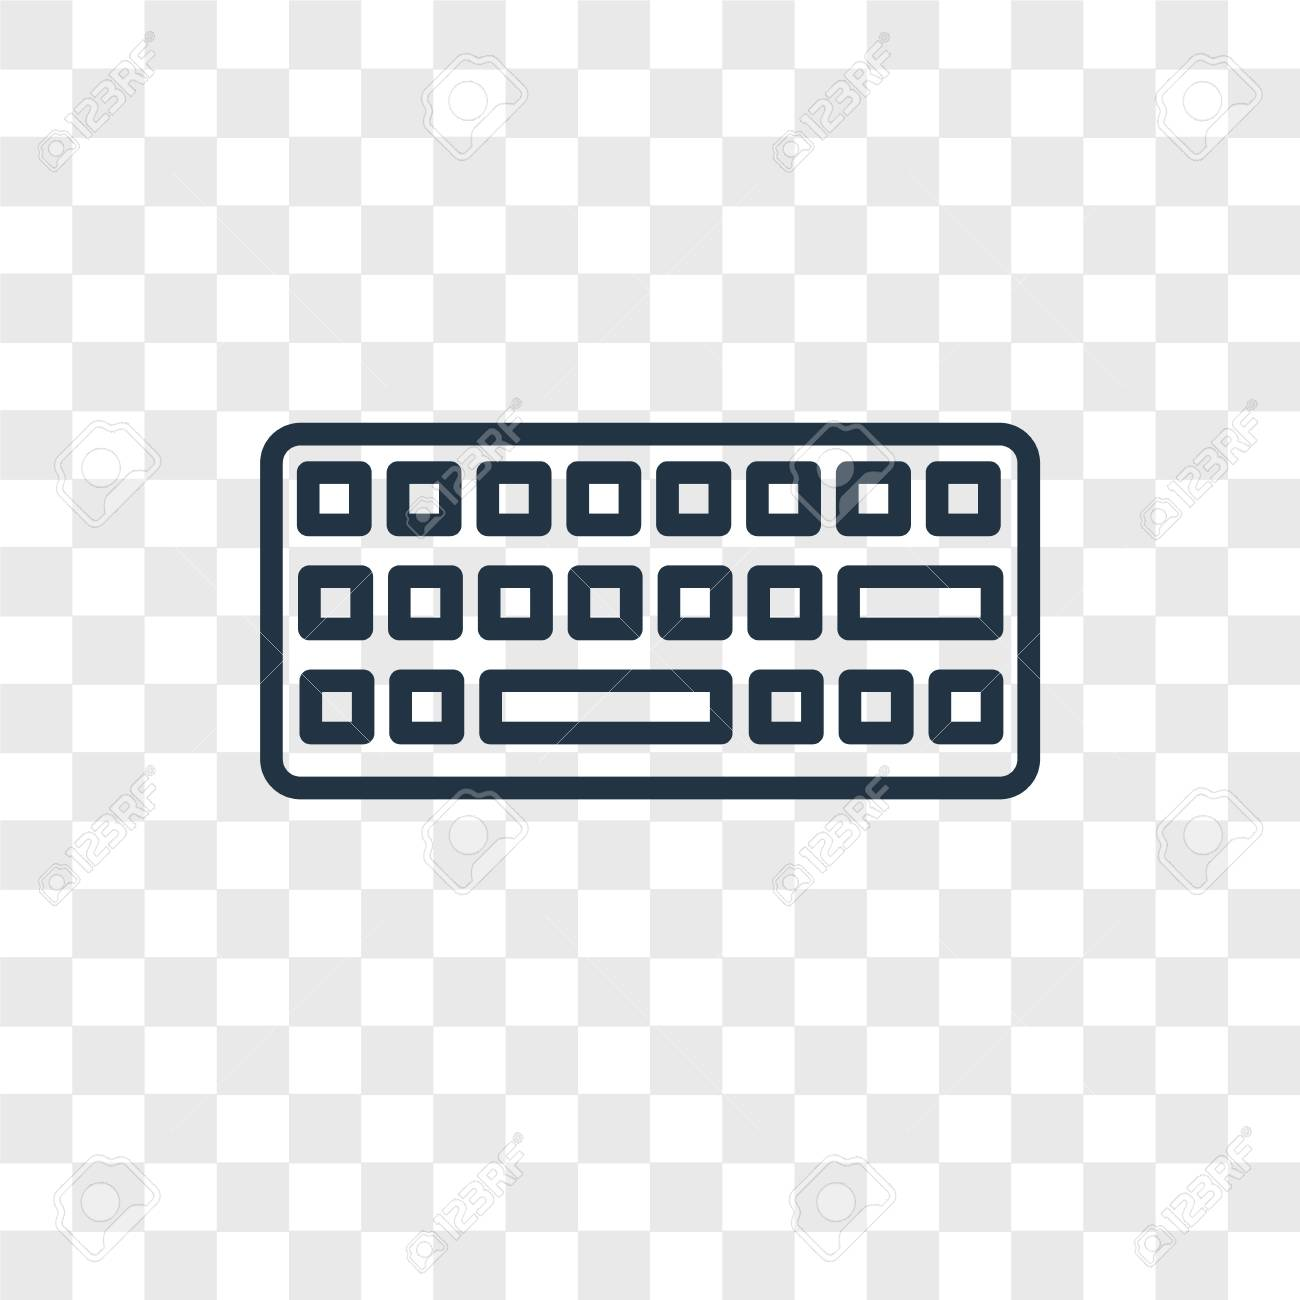 Keyboard Vector Icon Isolated On Transparent Background Keyboard Royalty Free Cliparts Vectors And Stock Illustration Image 107679487